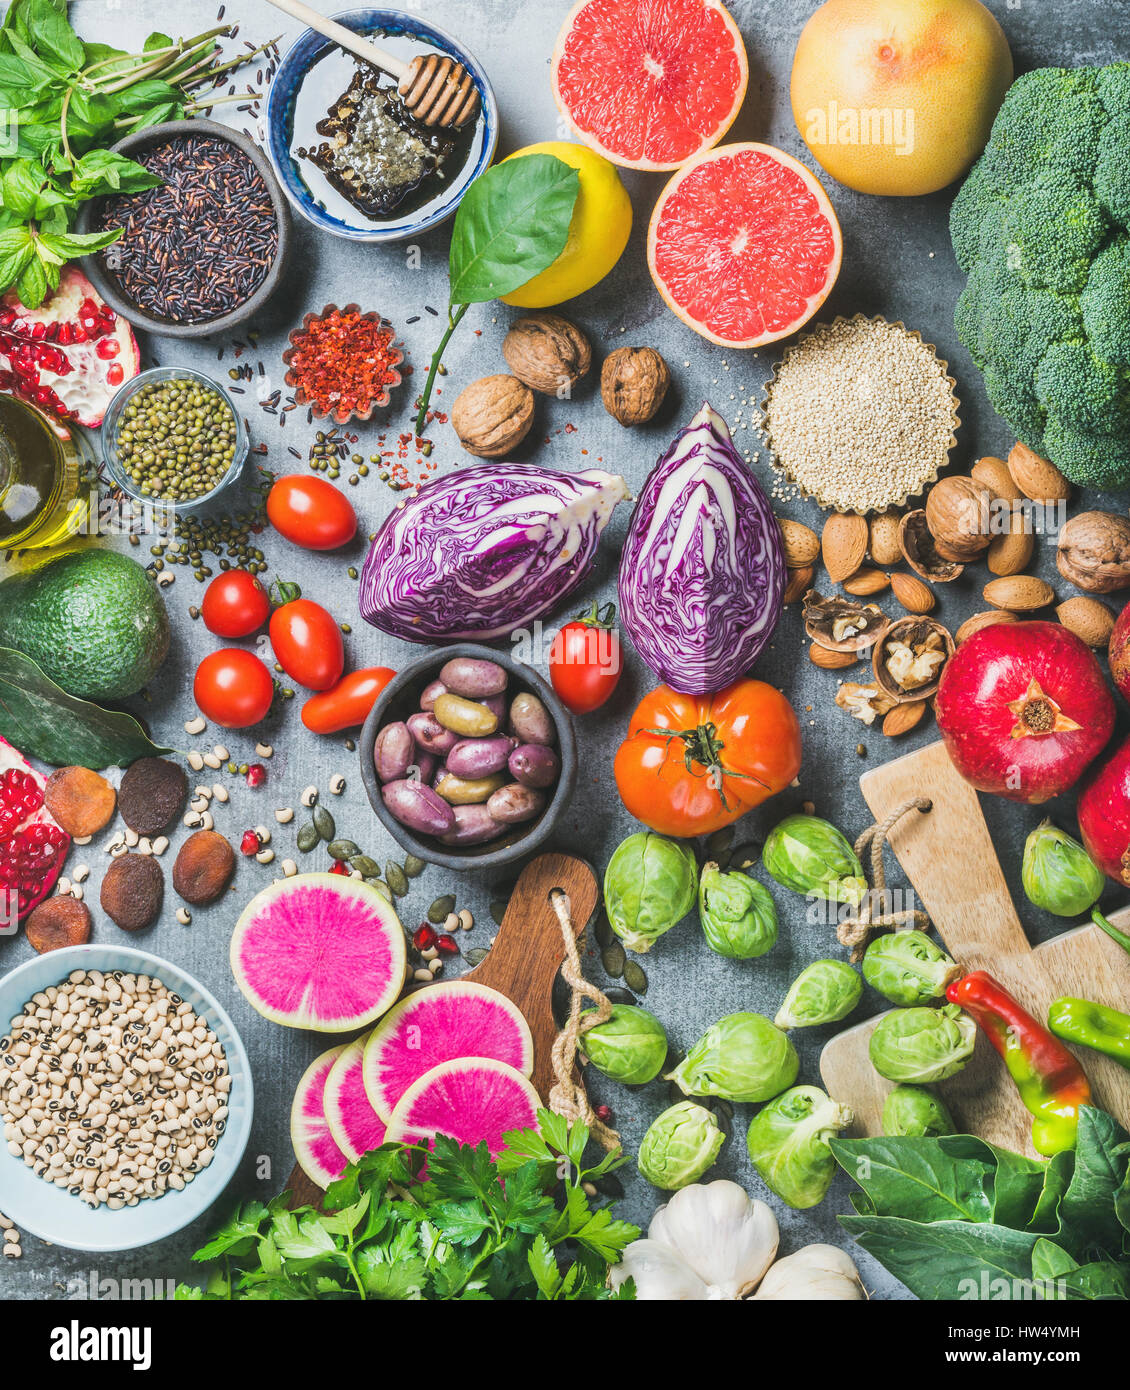 Healthy raw food variety over grey concrete background - Stock Image